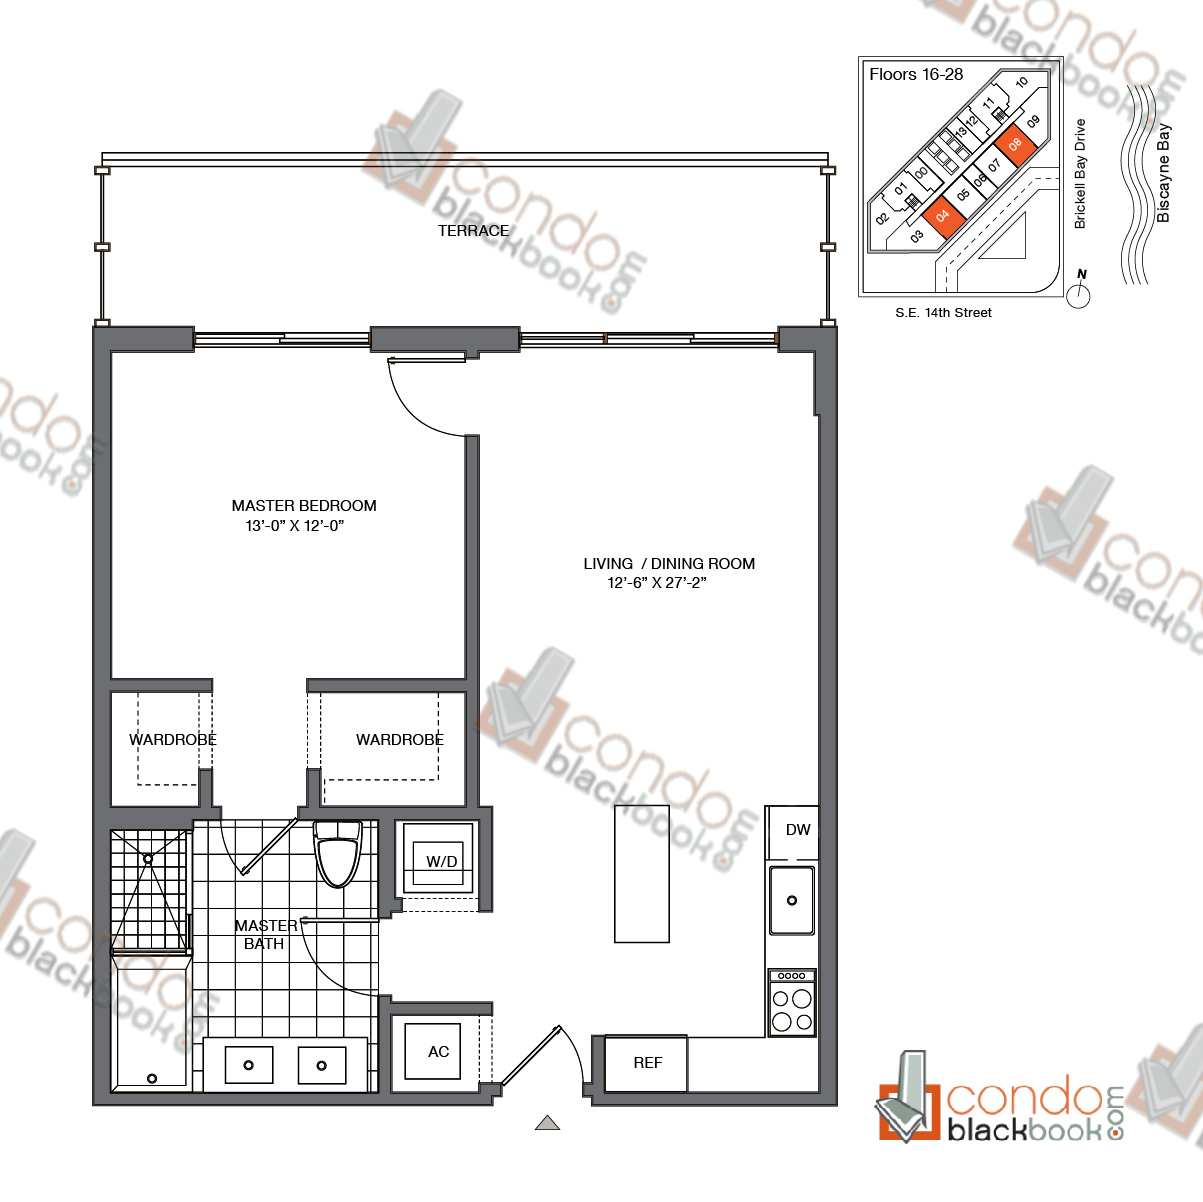 Floor plan for Brickell House Brickell Miami, model A6_16-28, line 04, 08, 1/1 bedrooms, 792 sq ft